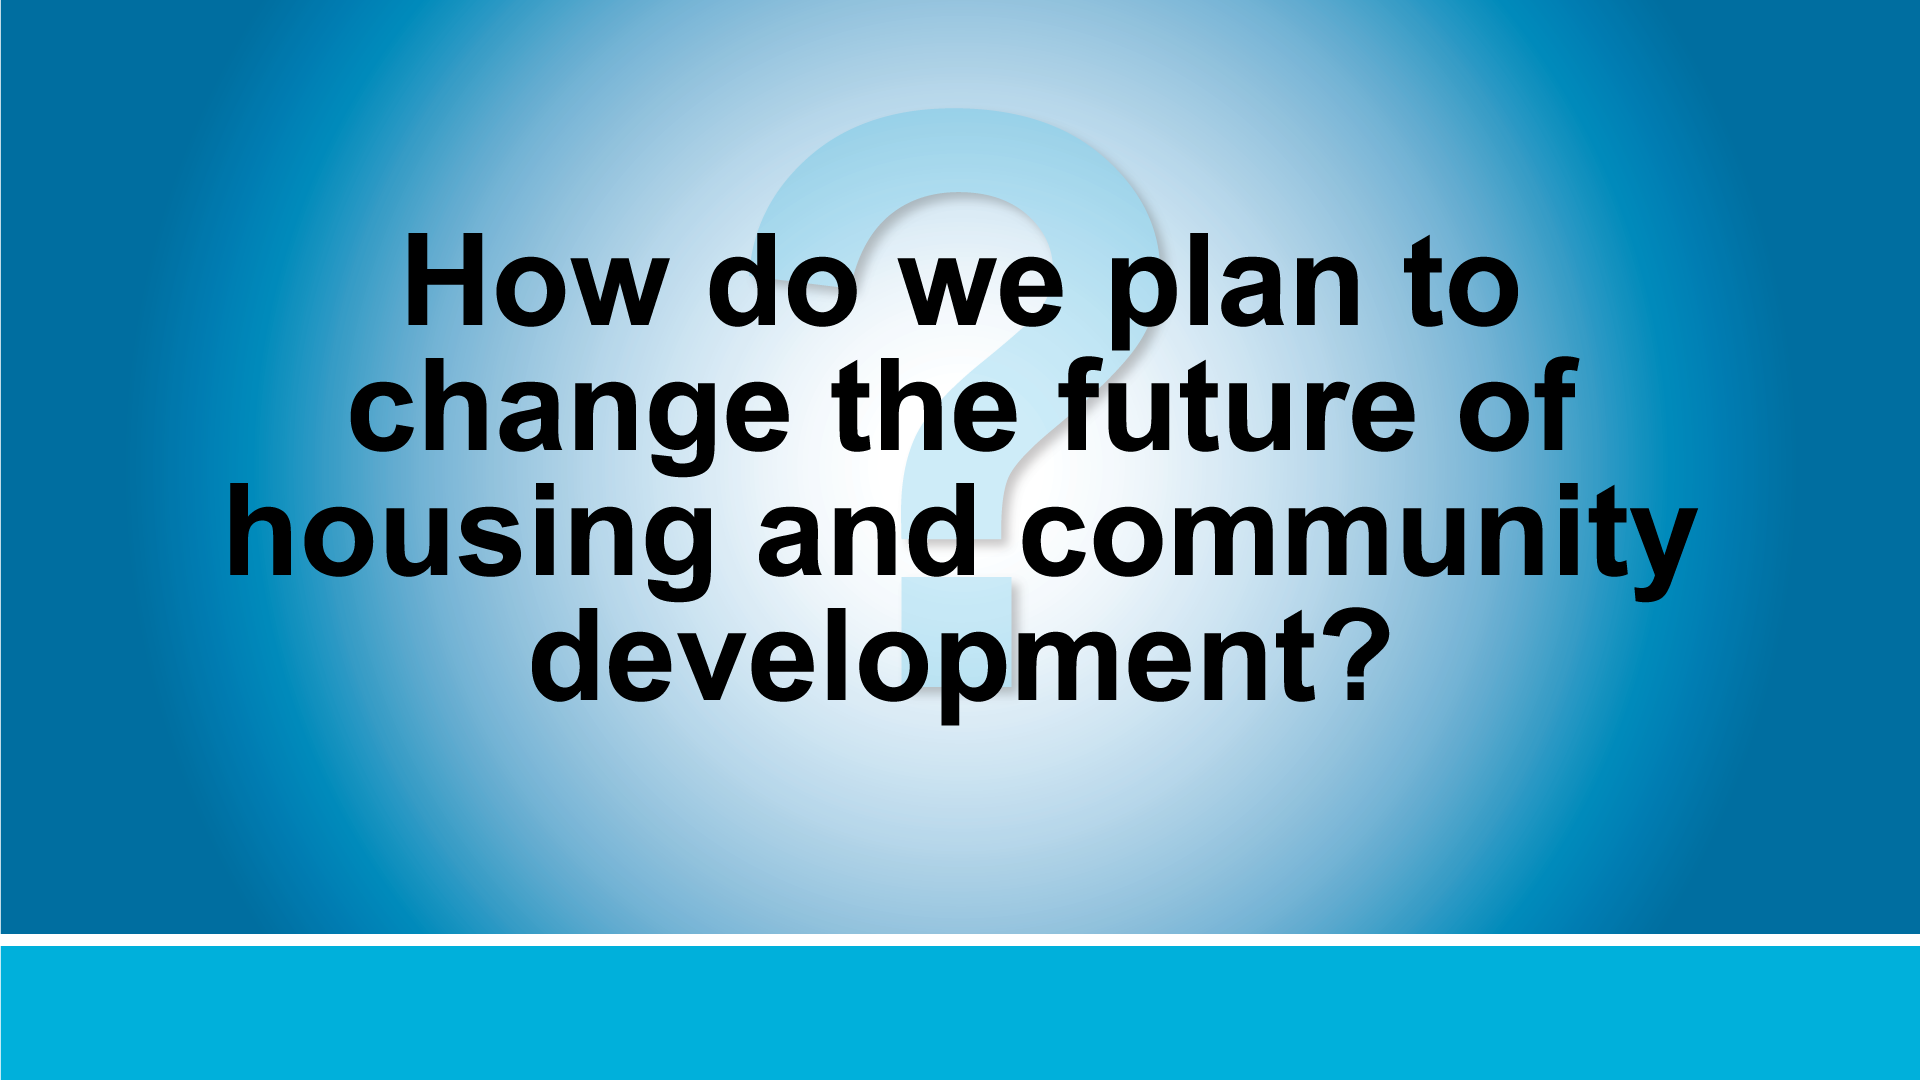 How do we plan on changing the future of housing and community growth?